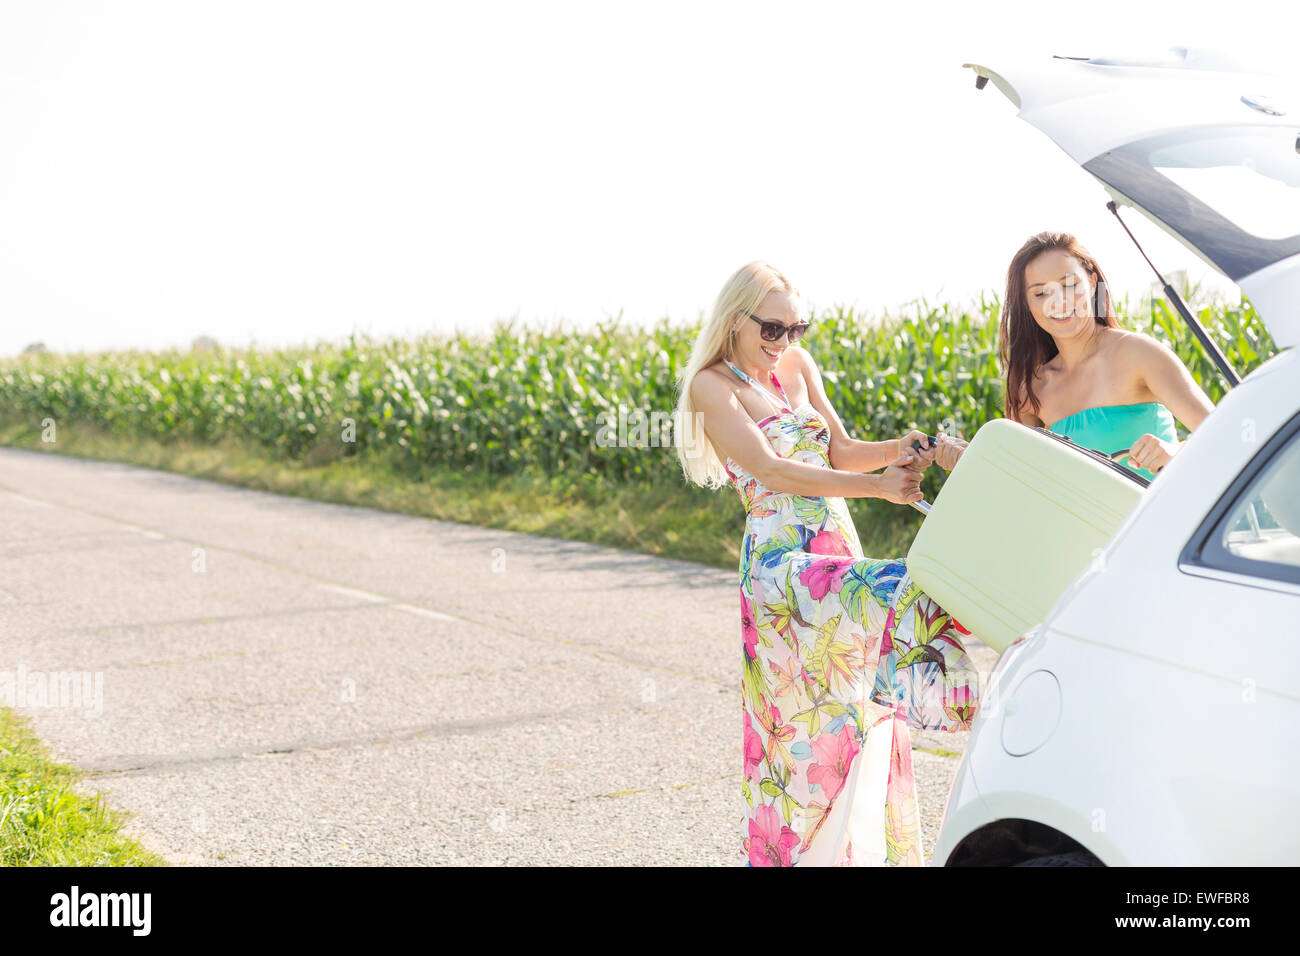 Happy women loading luggage in car trunk against clear sky - Stock Image